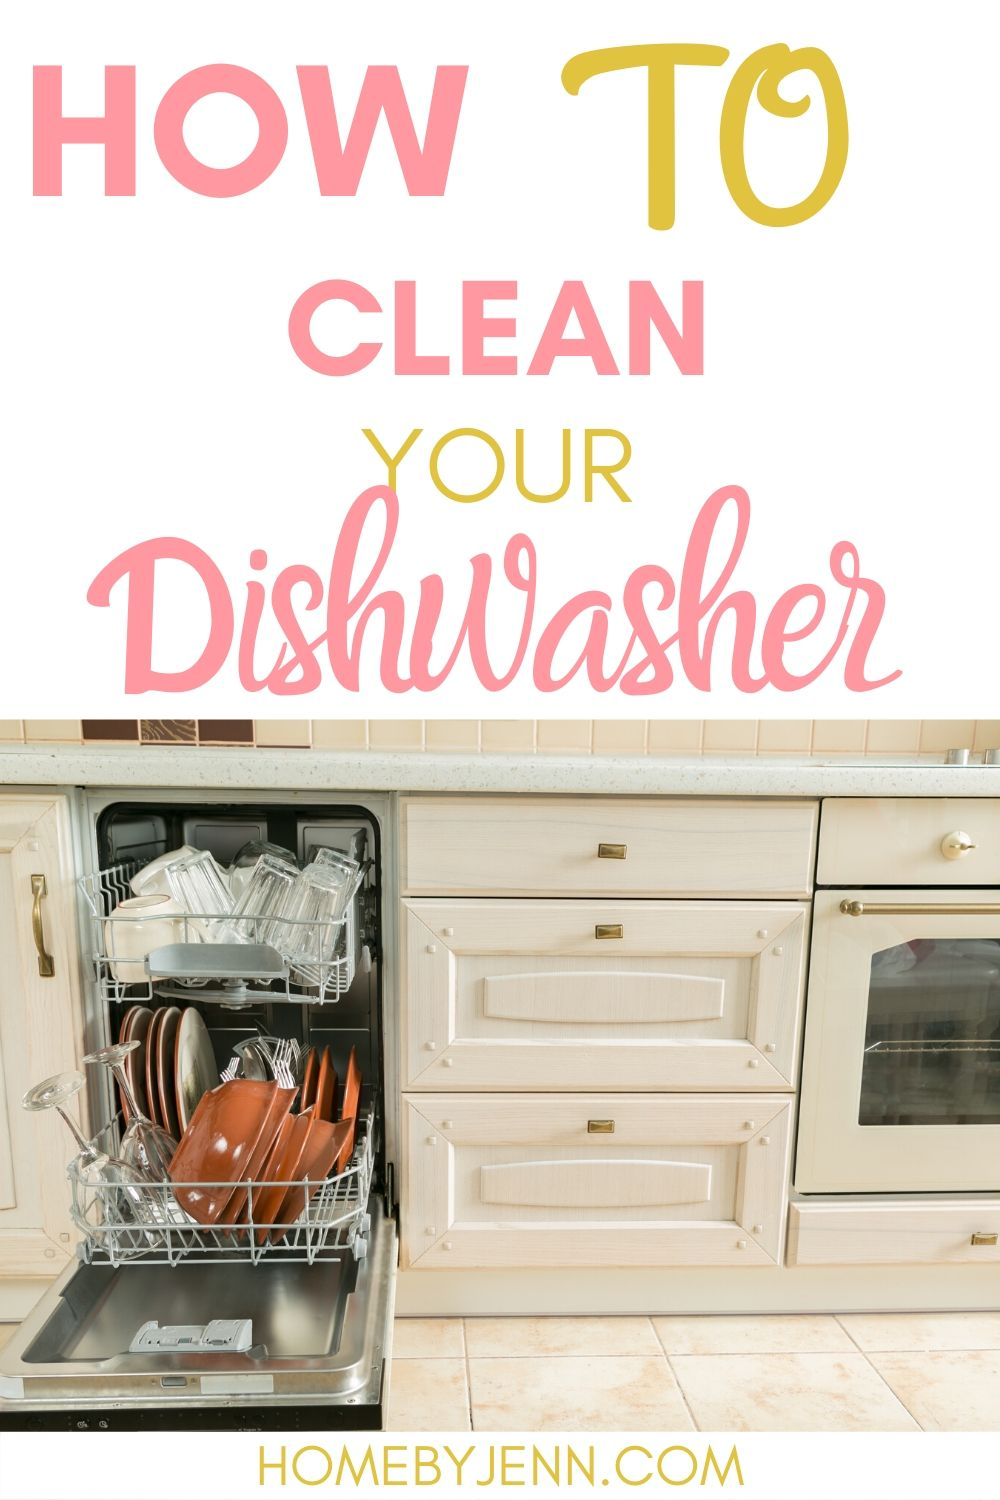 Learn how to clean your dishwasher so your dishes come out of the dishwasher fully clean. #cleaningtips #cleaning #cleaningtipsandtricks #cleaninghacks #dishwasher #cleanyourdishwasher via @homebyjenn